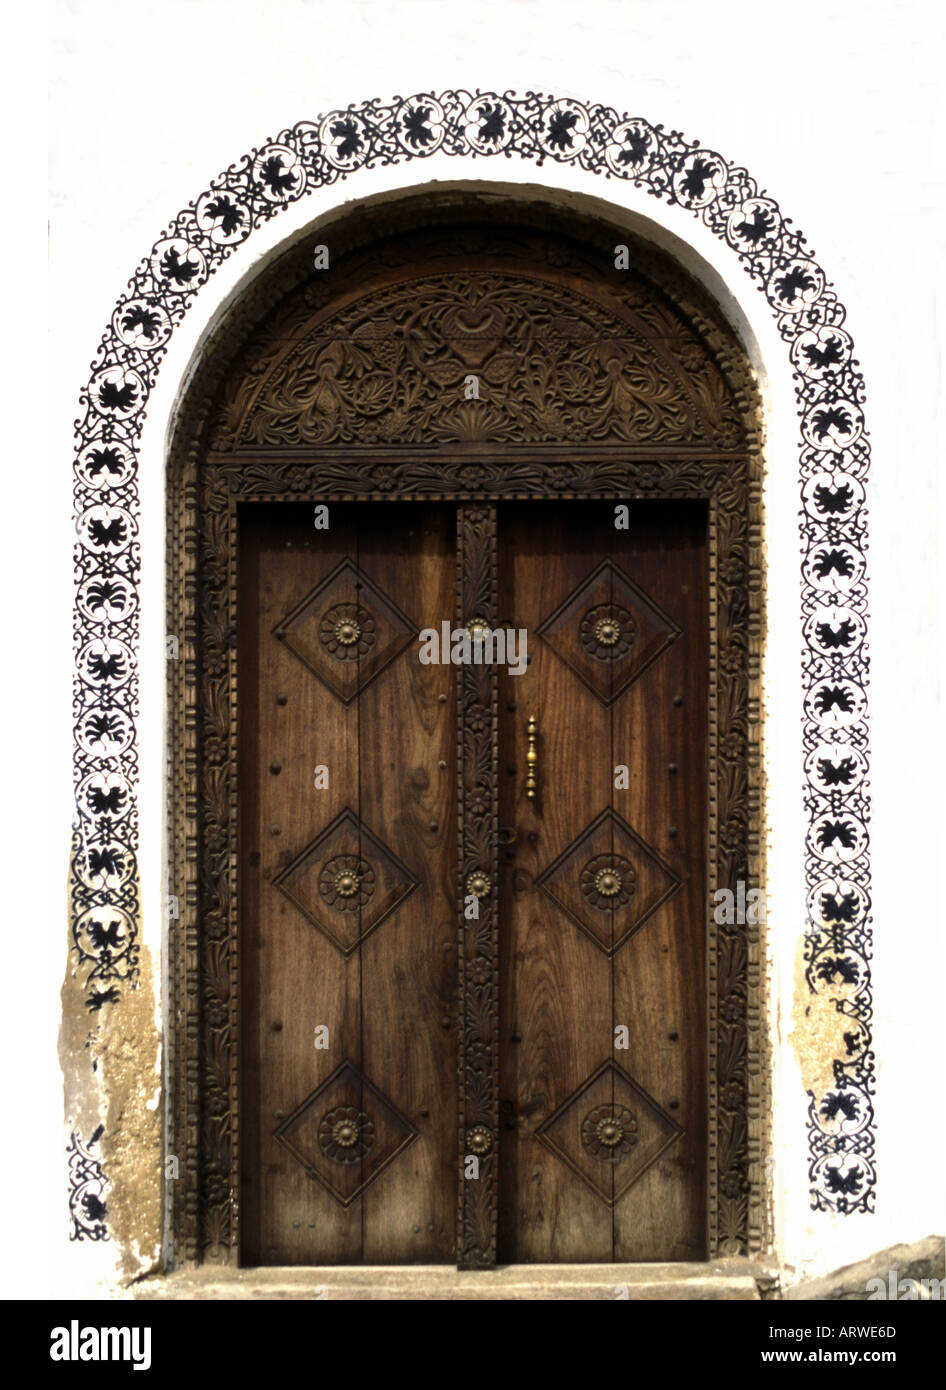 Typical traditional wooden carved door in the stone town of Zanzibar Tanzania East Africa Stock Photo